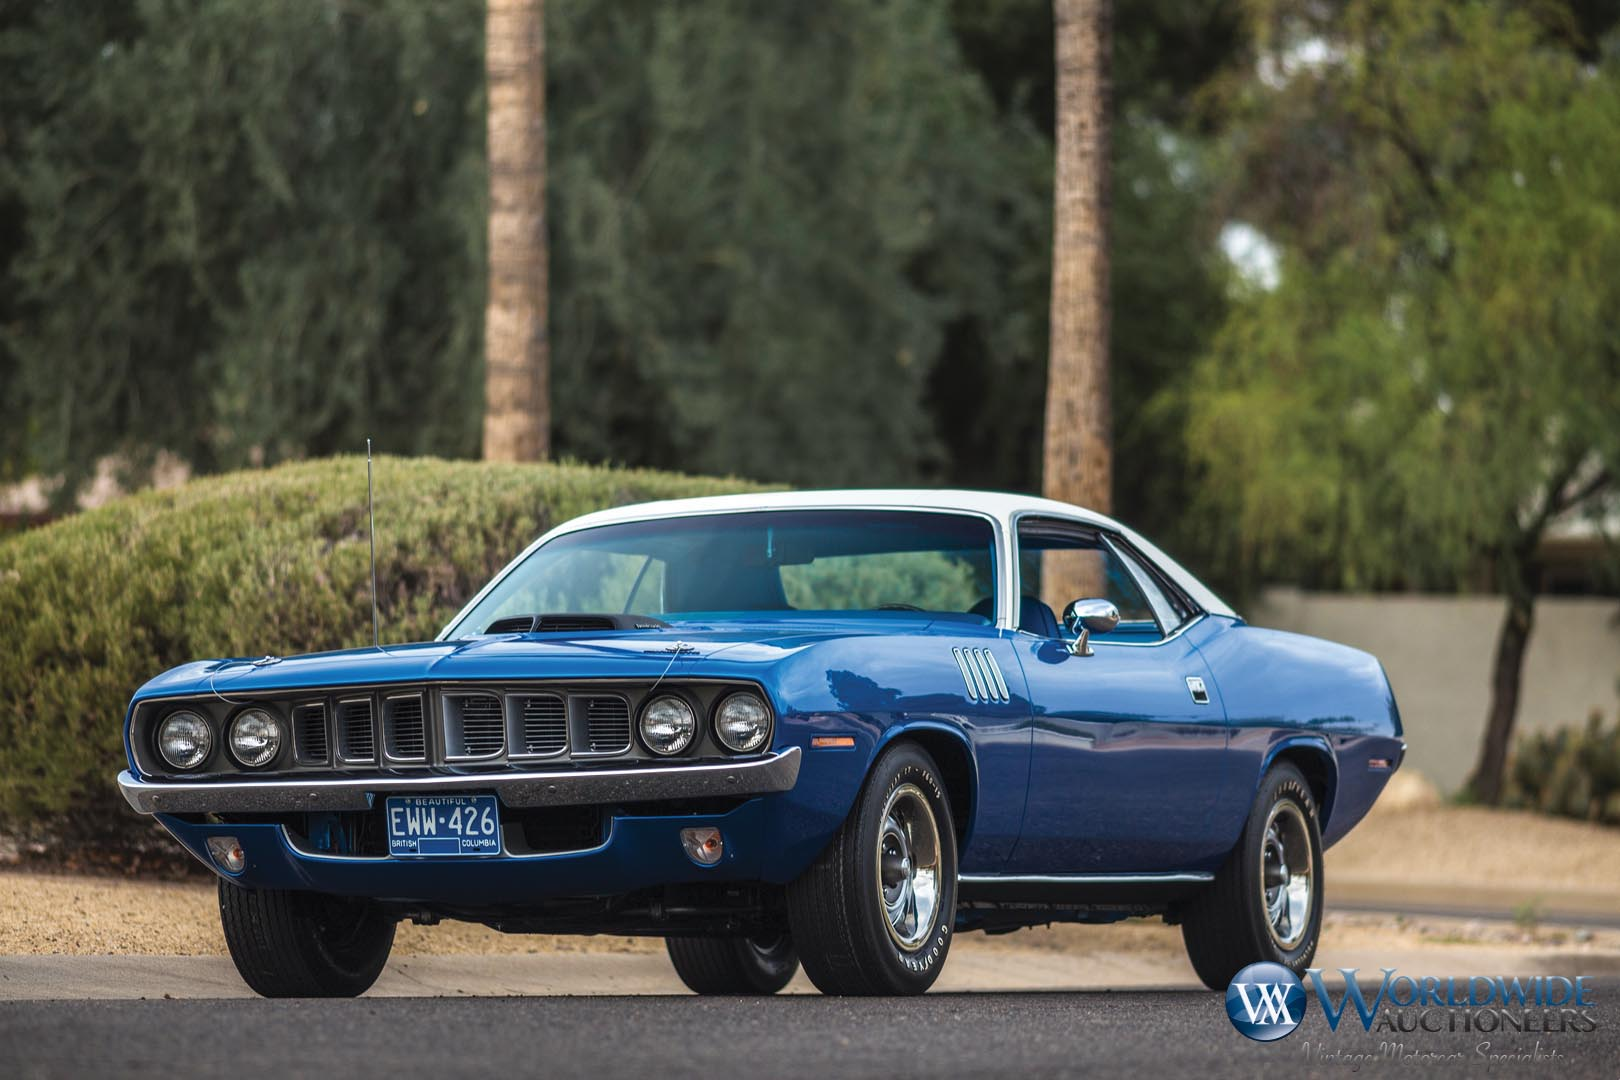 1971 Plymouth Hemi 'Cuda at Worldwide